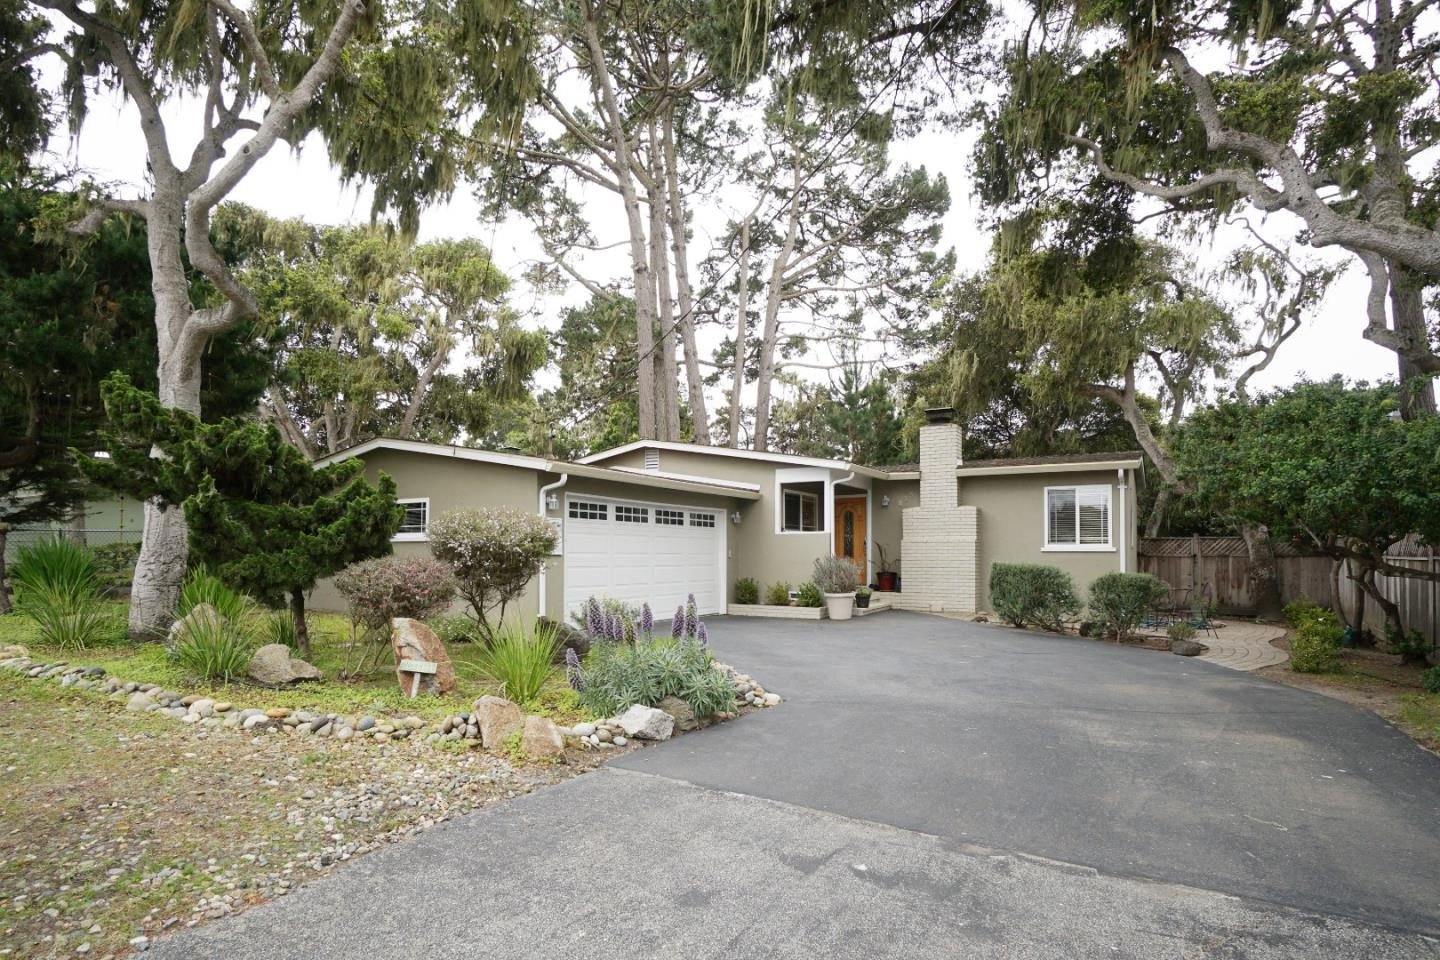 Property for sale at 825 Marino Pines RD, Pacific Grove,  CA 93950